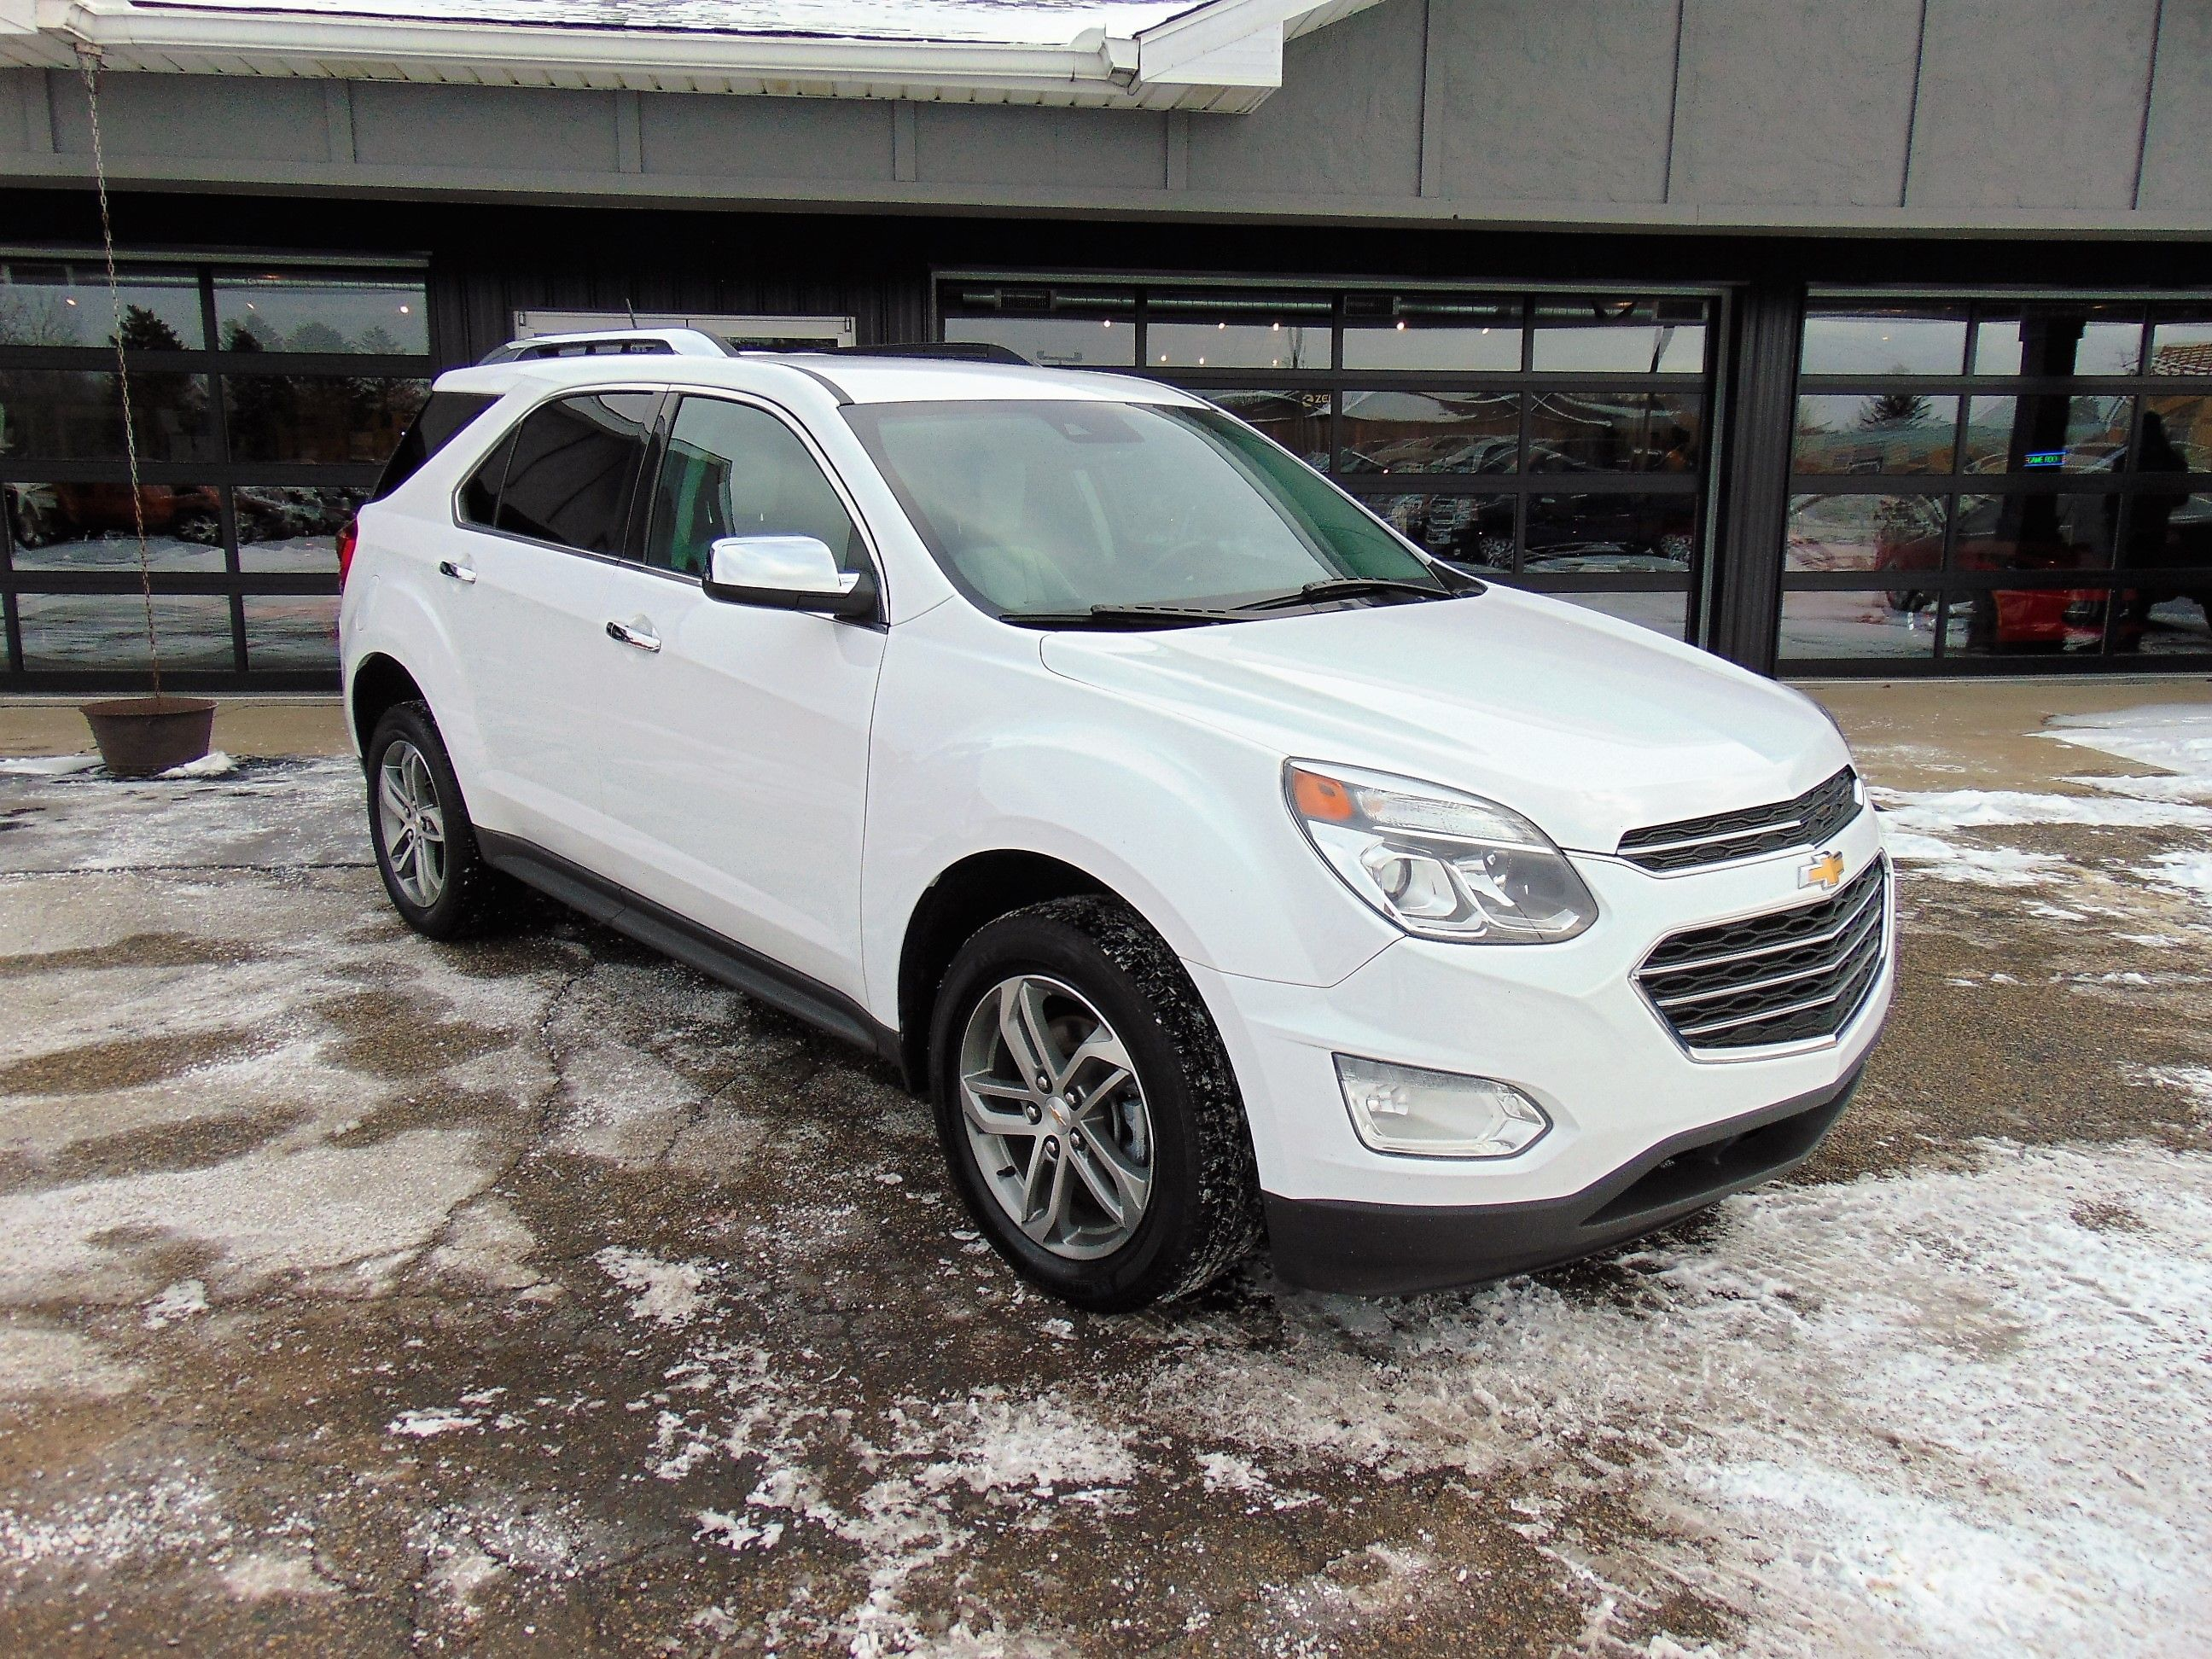 FOR SALE 2016 Chevy Equinox LTZ